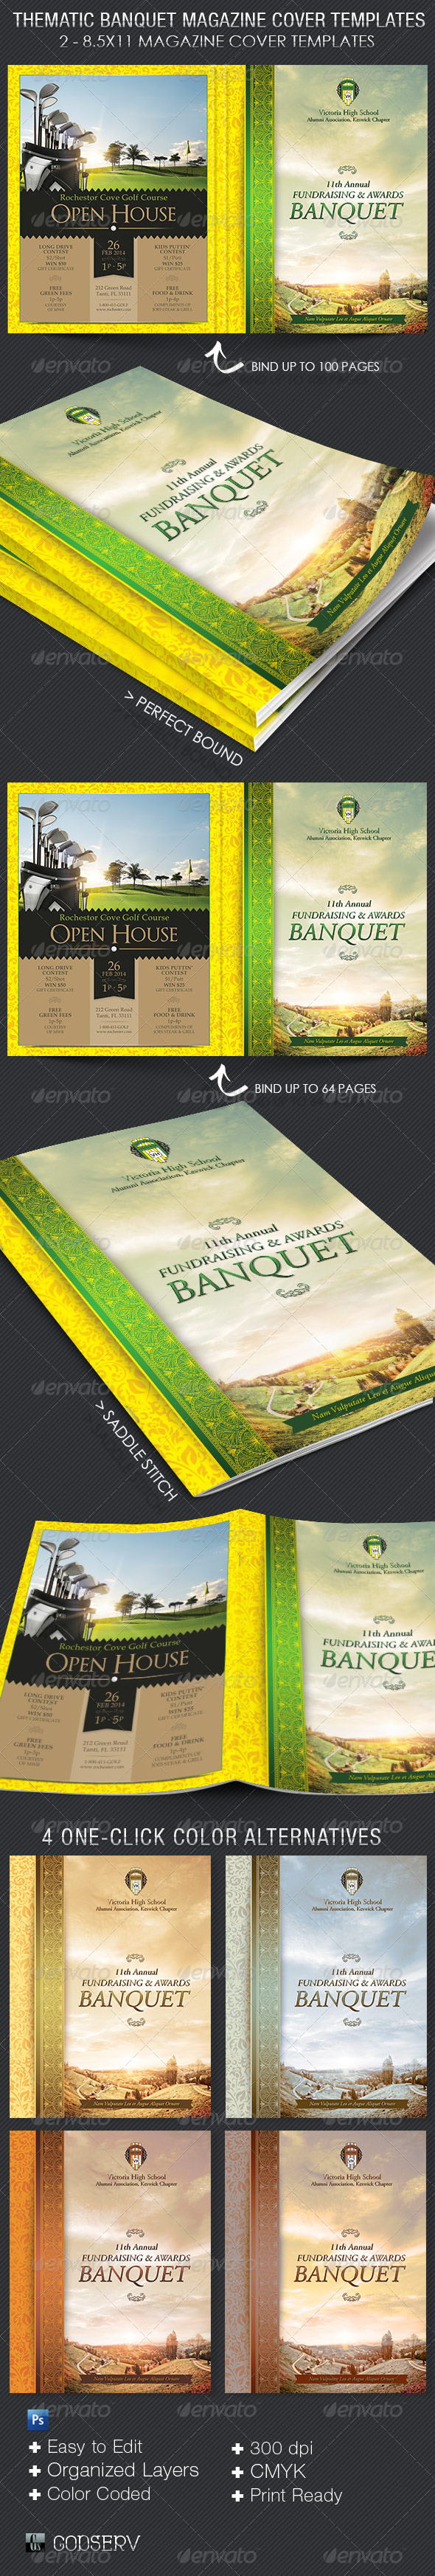 Thematic Banquet Magazine Cover Template - Magazines Print Templates